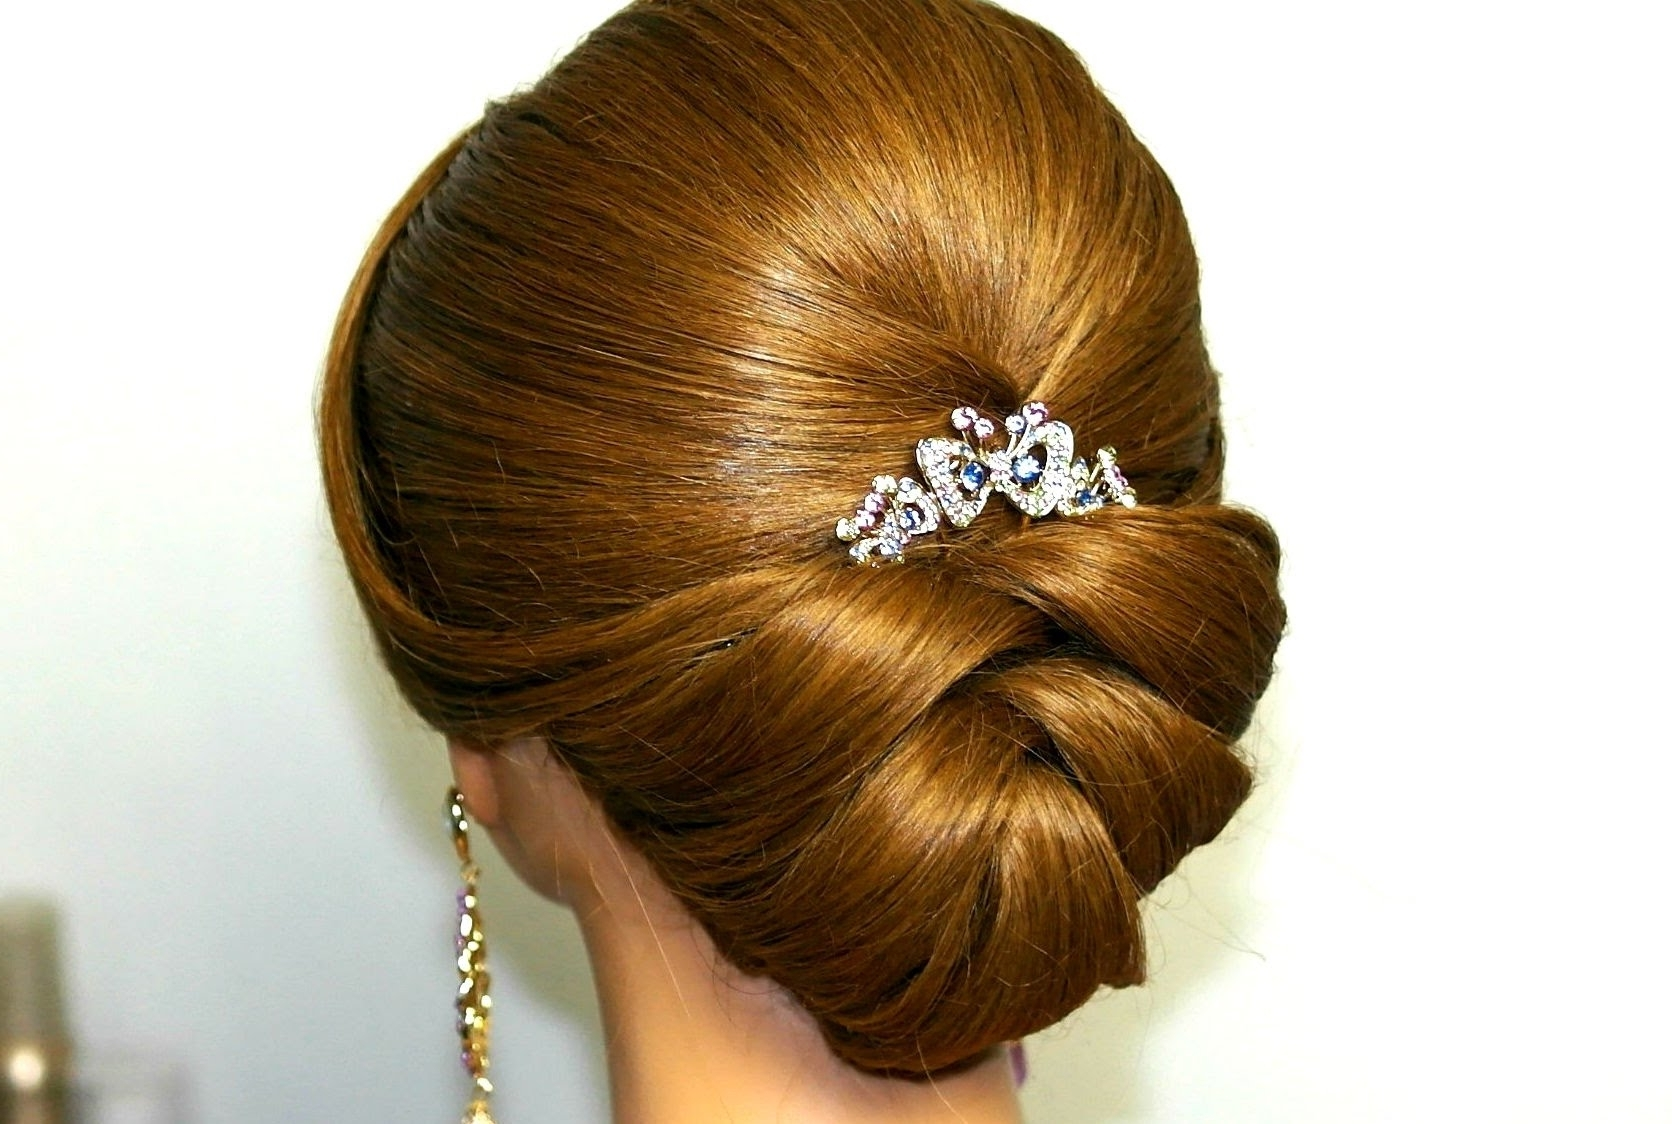 Recent Simple Indian Wedding Hairstyles For Medium Length Hair Throughout Wedding Hairstyle For Medium Long Hair (View 13 of 15)